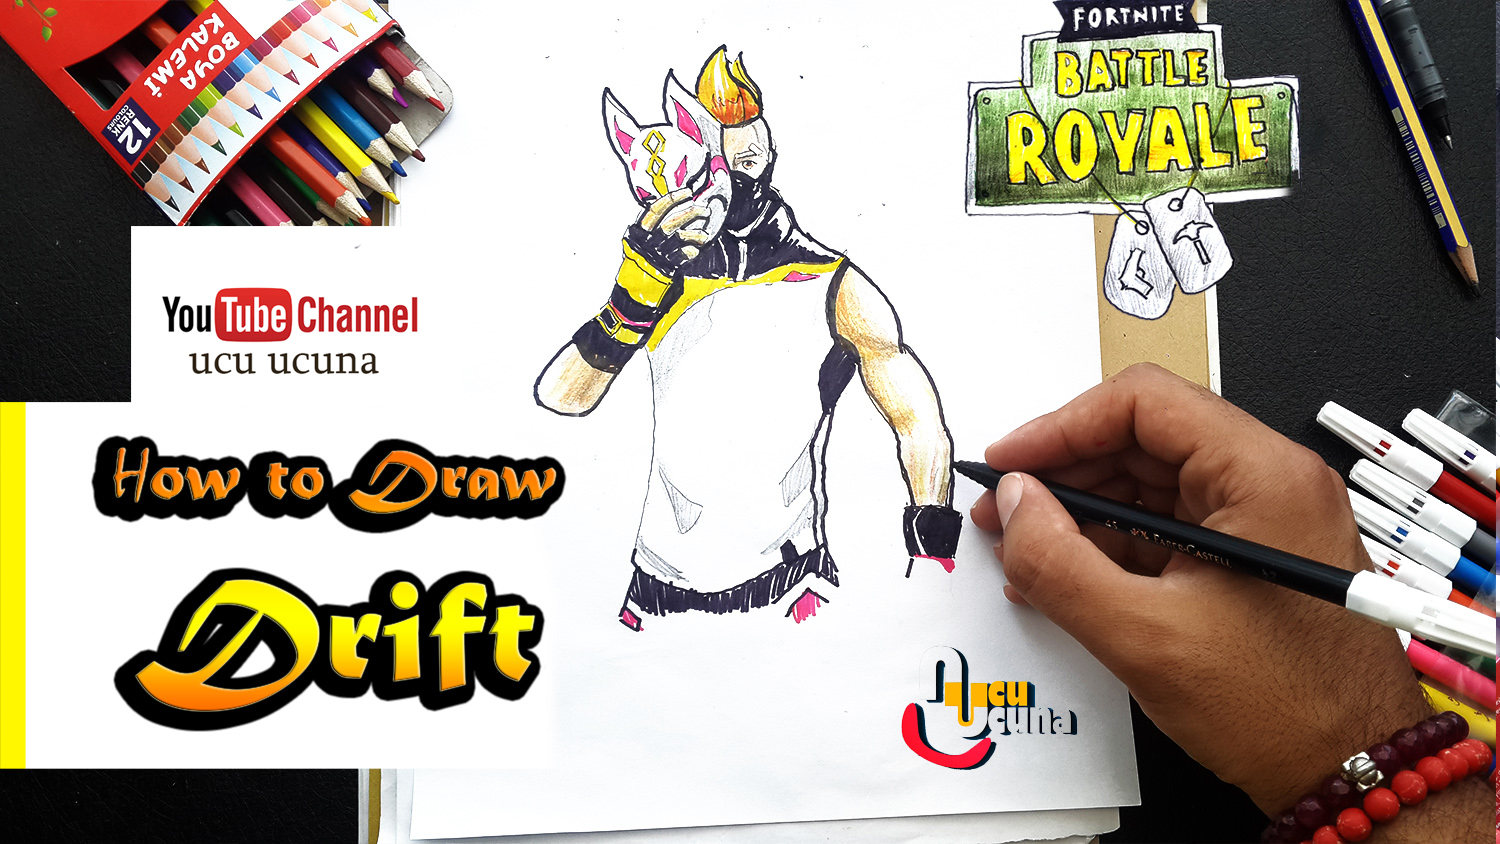 How To Draw Drift Art Tutorial